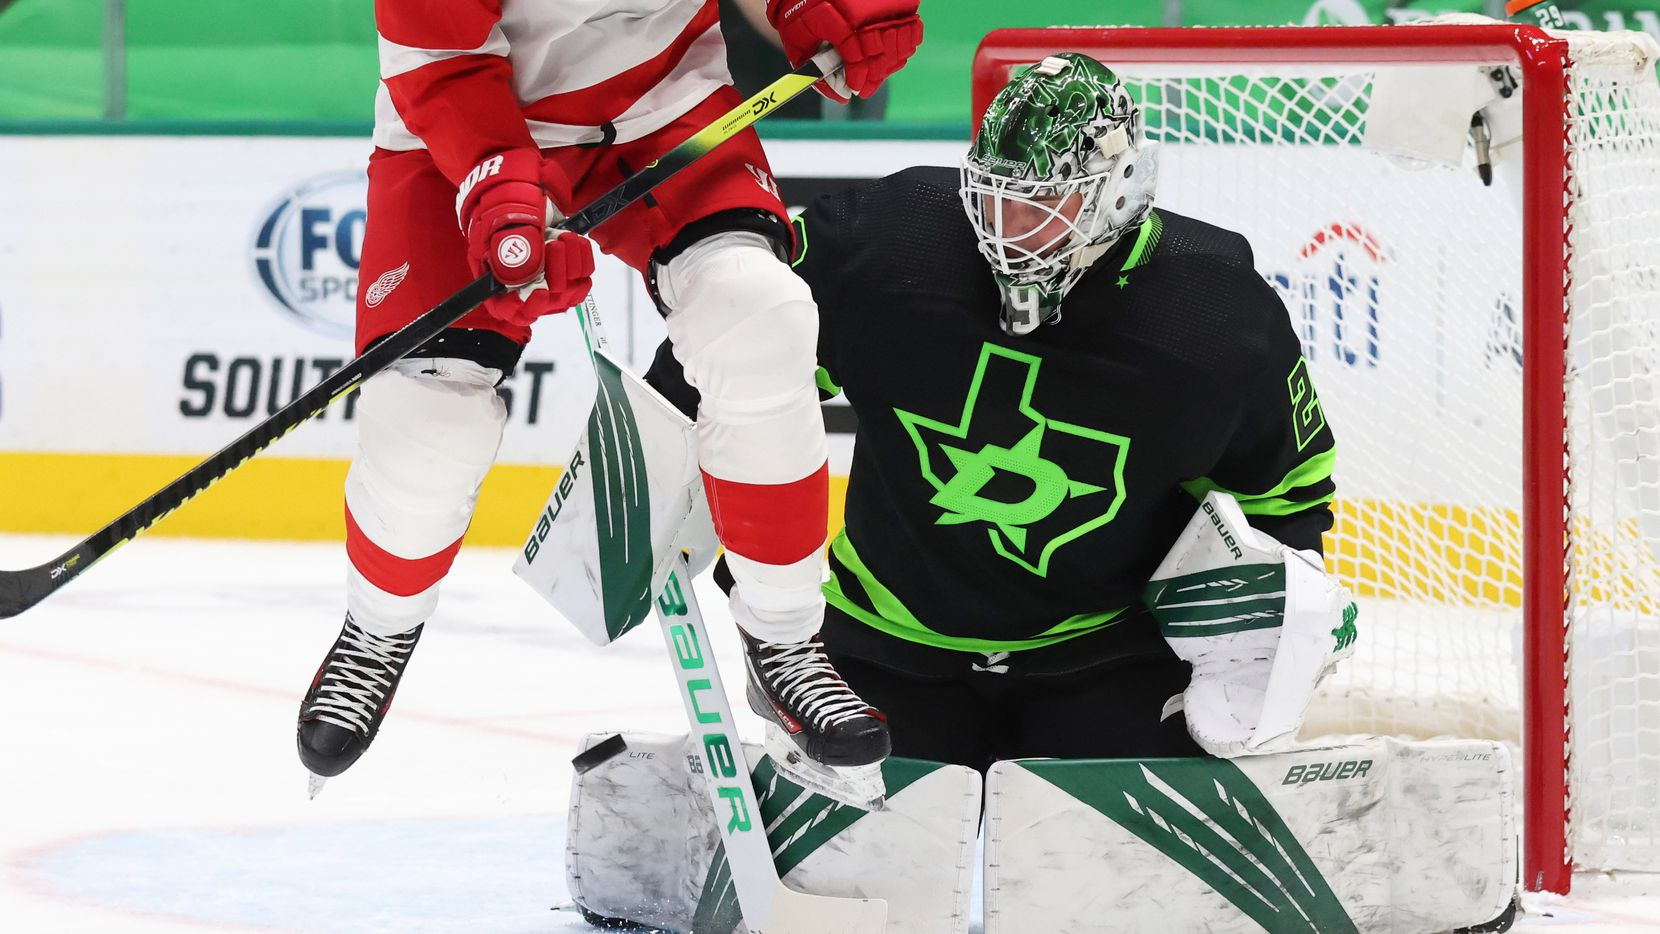 Stars goaltender Jake Oettinger (29) stops a shot on goal as Red Wings right wing Bobby Ryan (54) leaps in the air during the second period of play at American Airlines Center on Thursday, Jan. 28, 2021,in Dallas.